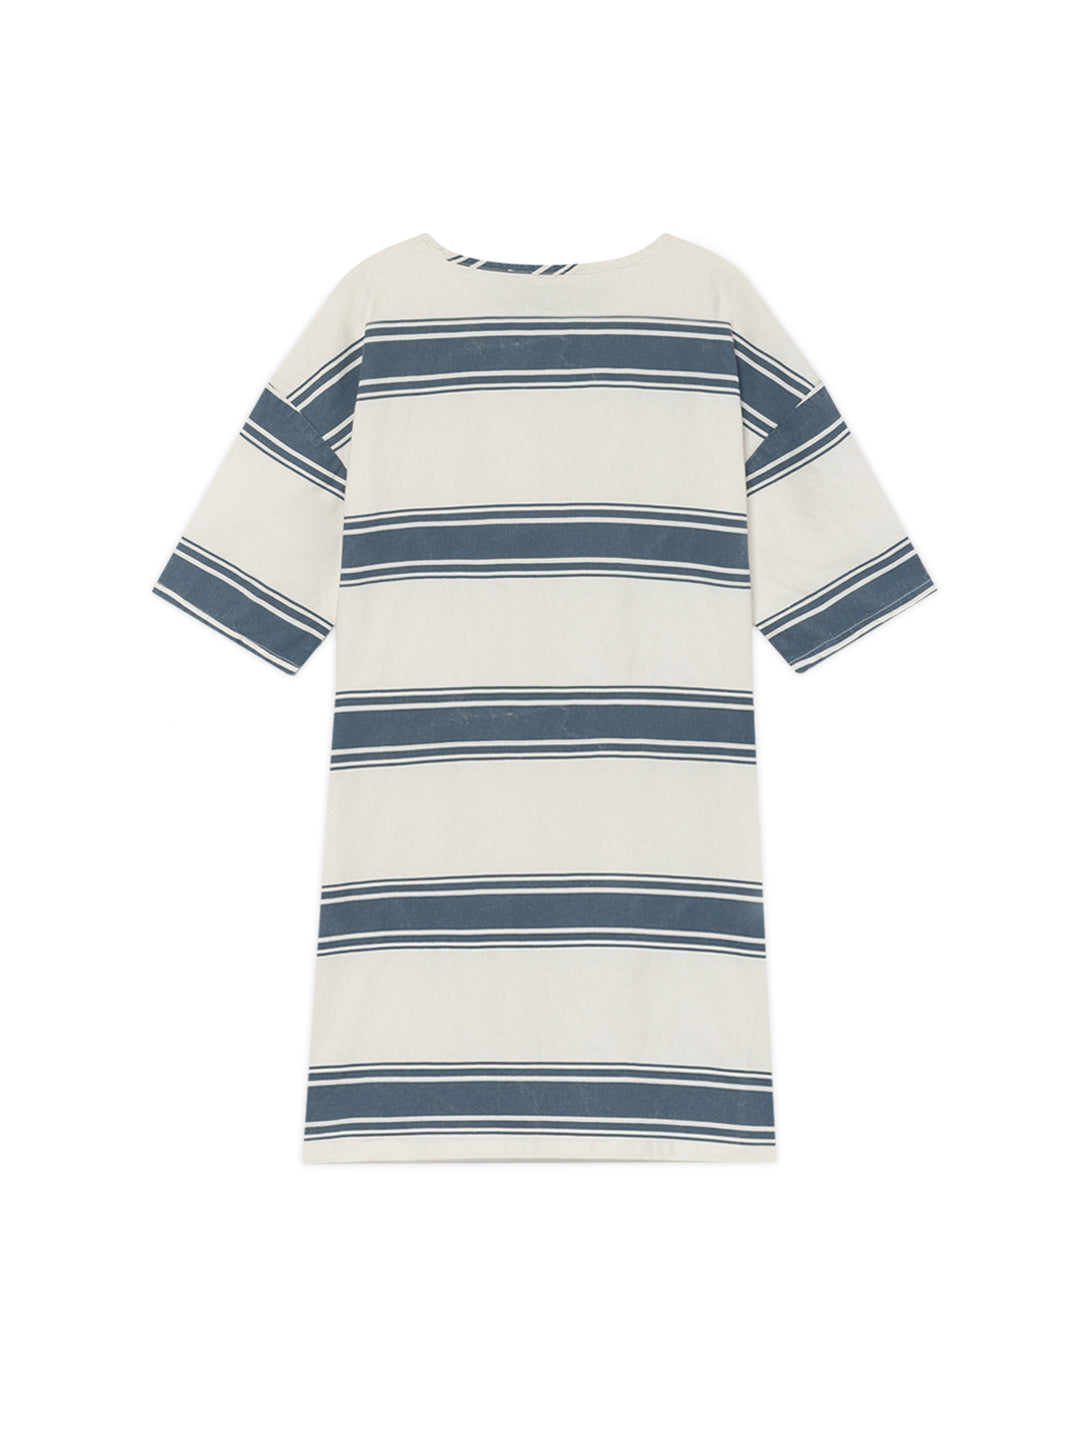 TWOTHIRDS Womens Dress: Tilou - Blue Stripes back